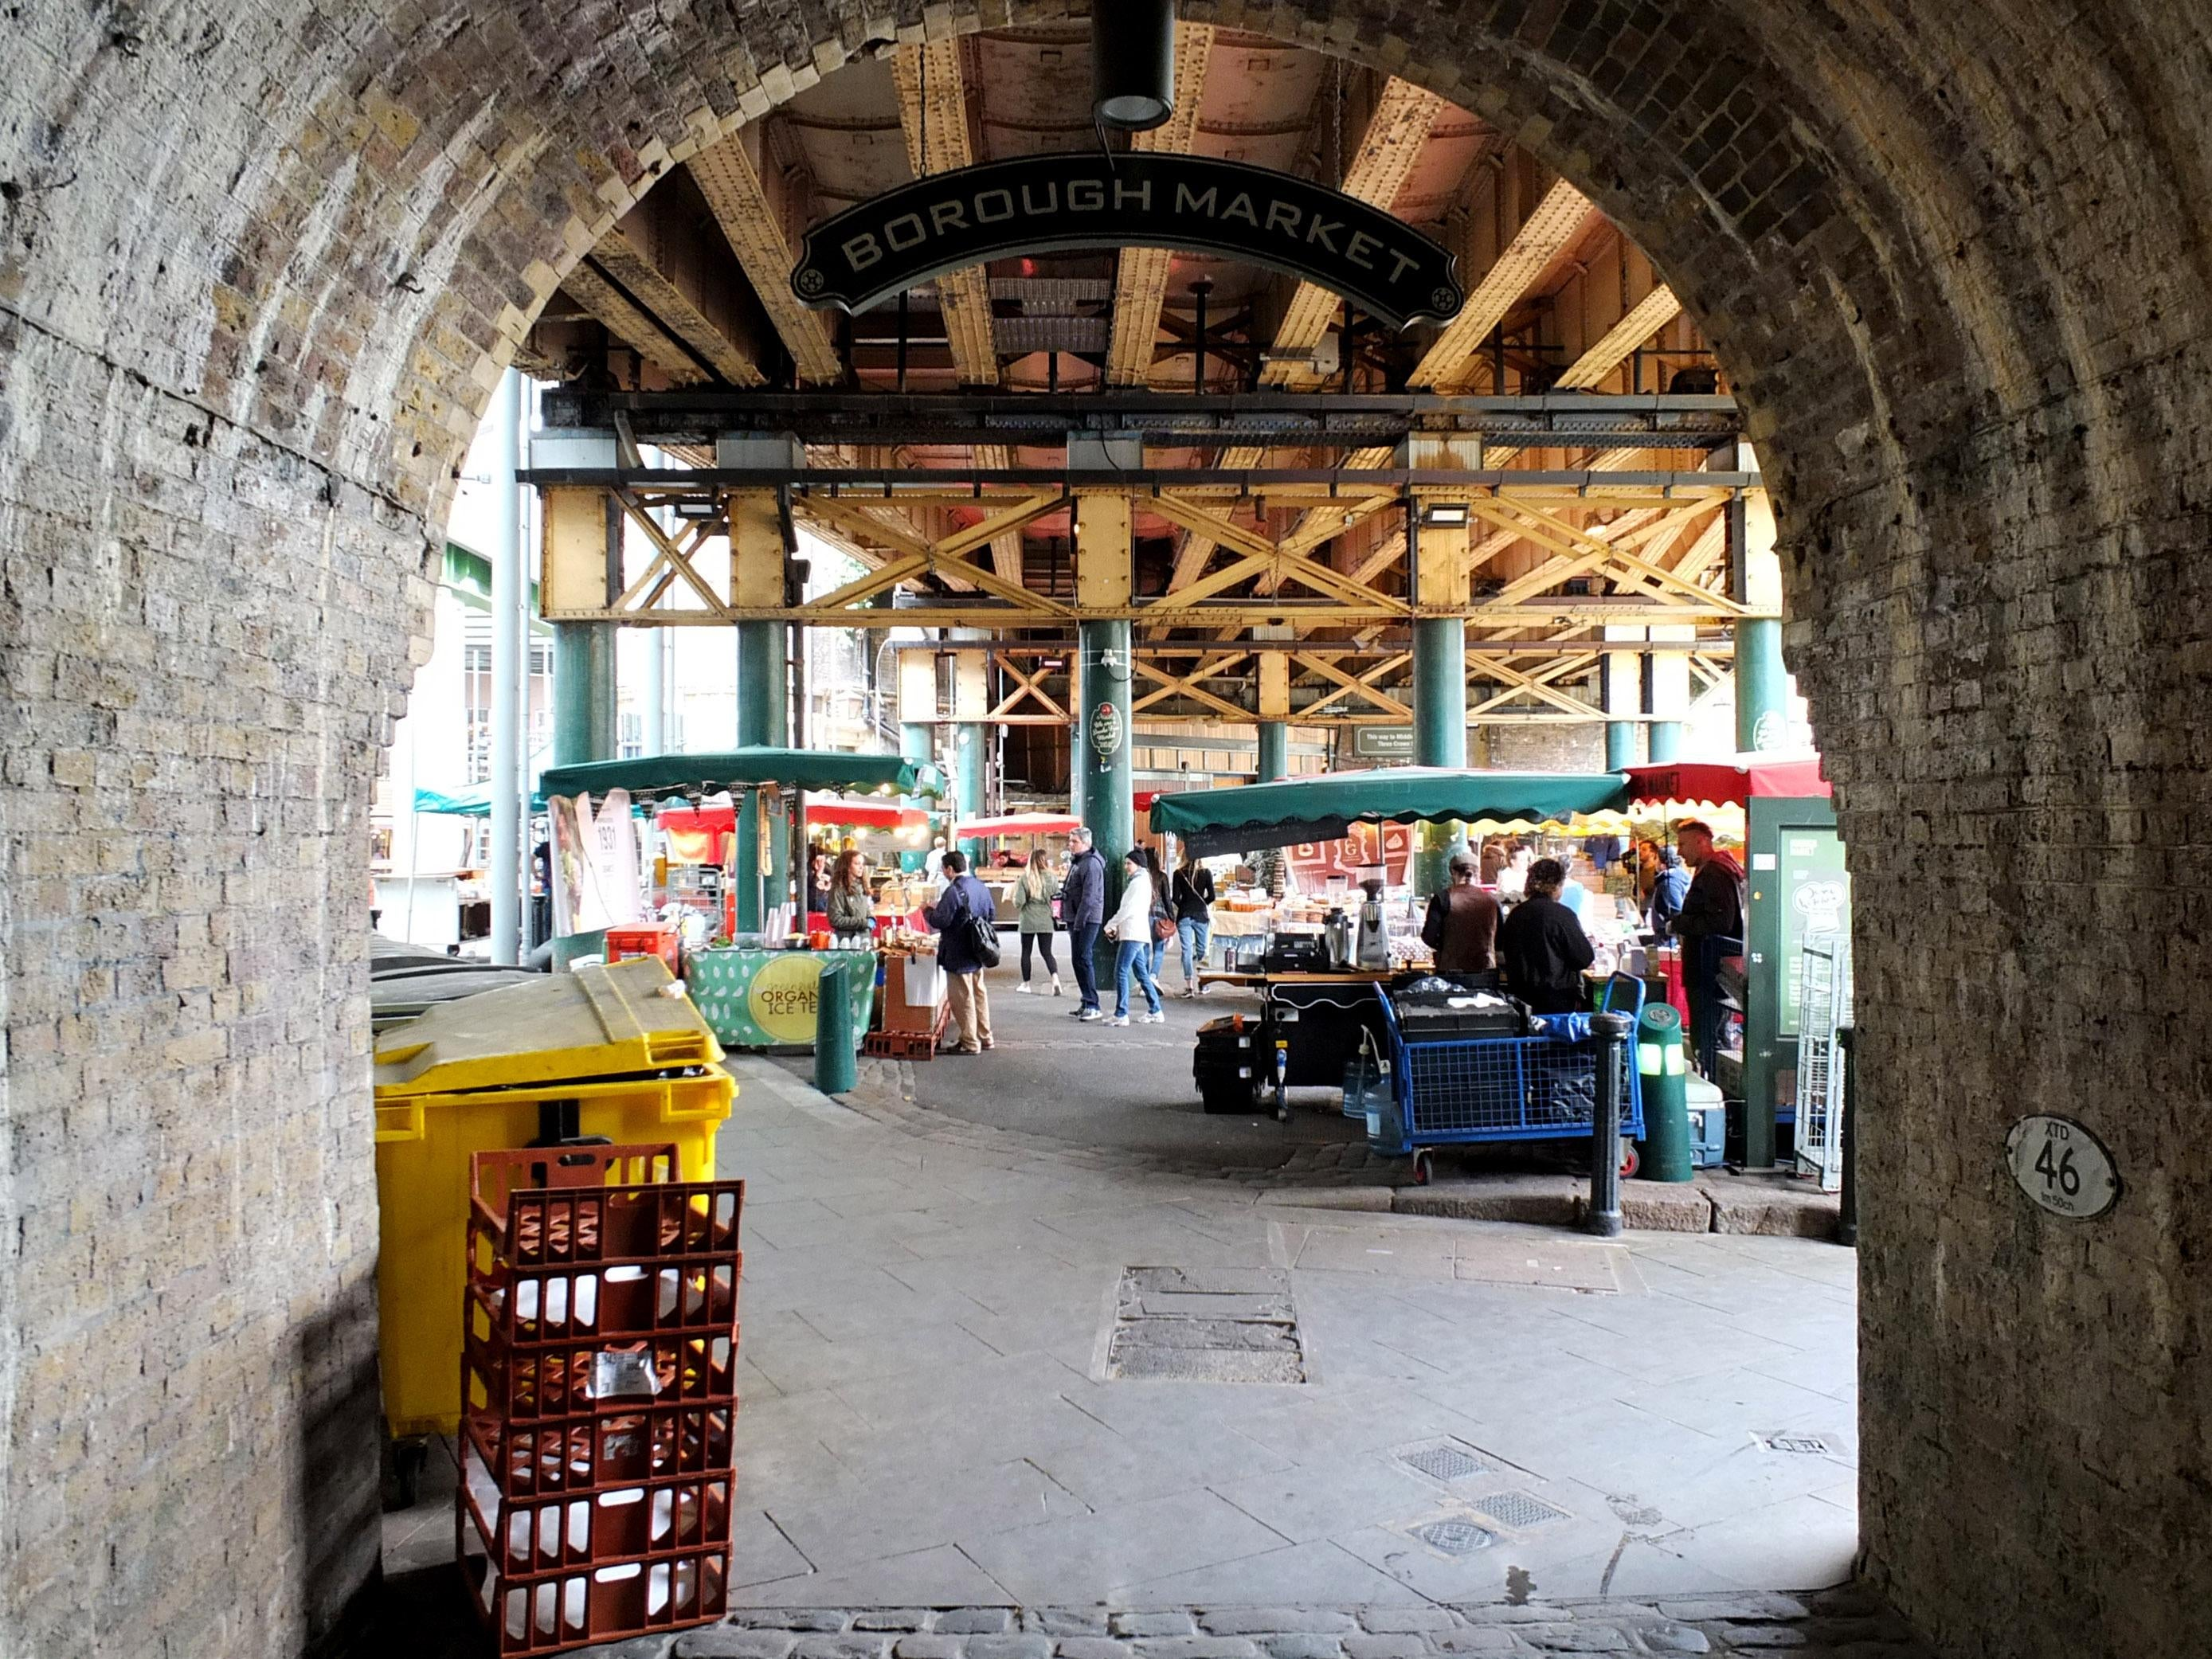 Arco en Borough Market